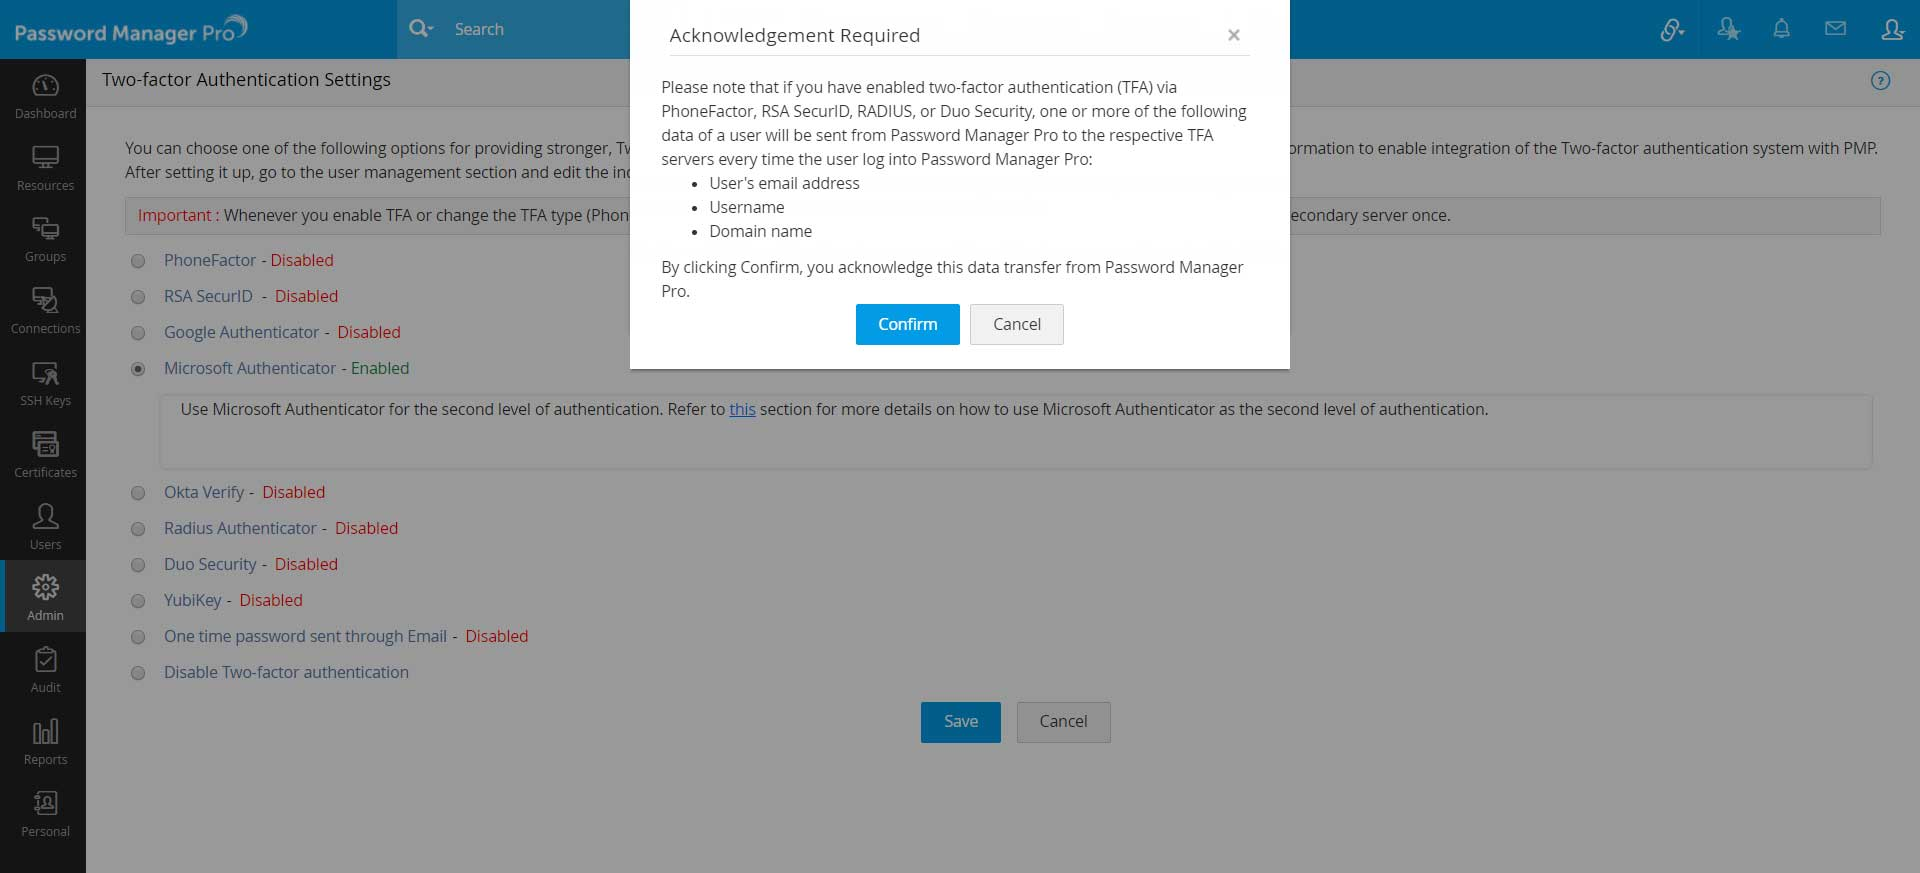 Setting up two-factor authentication - Microsoft Authenticator